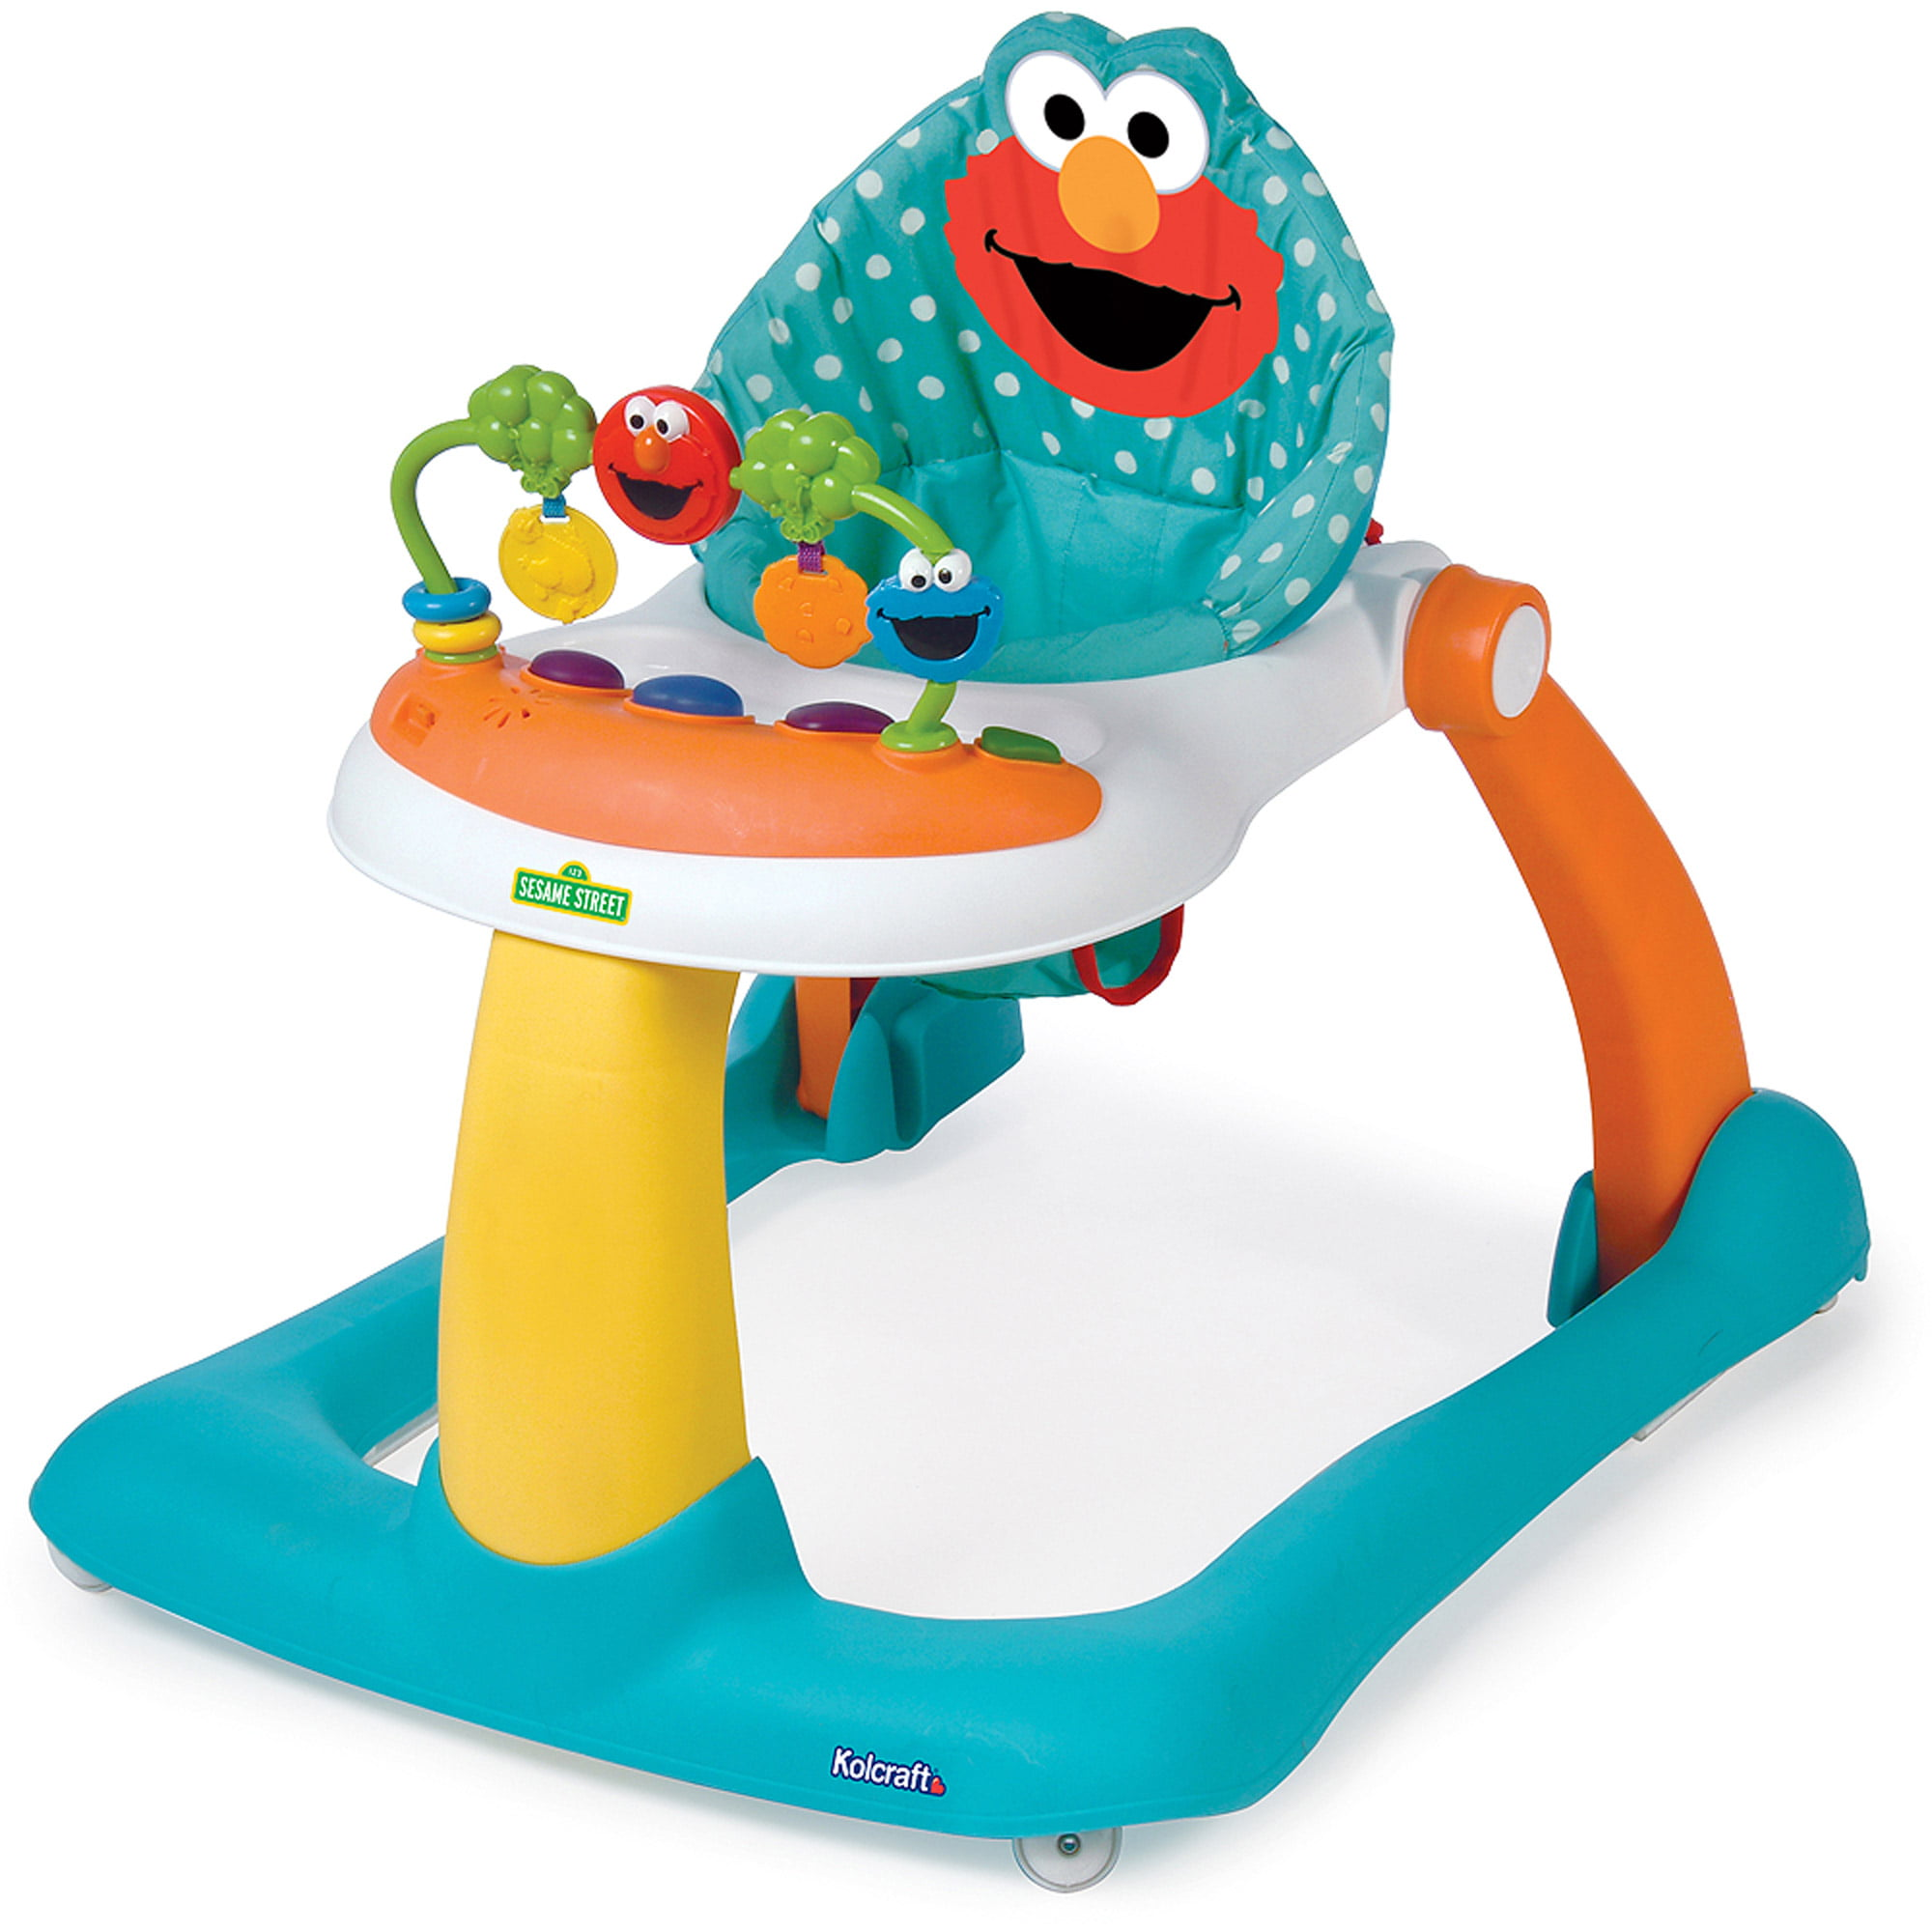 Sesame Street Elmo 2-in-1 Activity Walker - Walmart.com